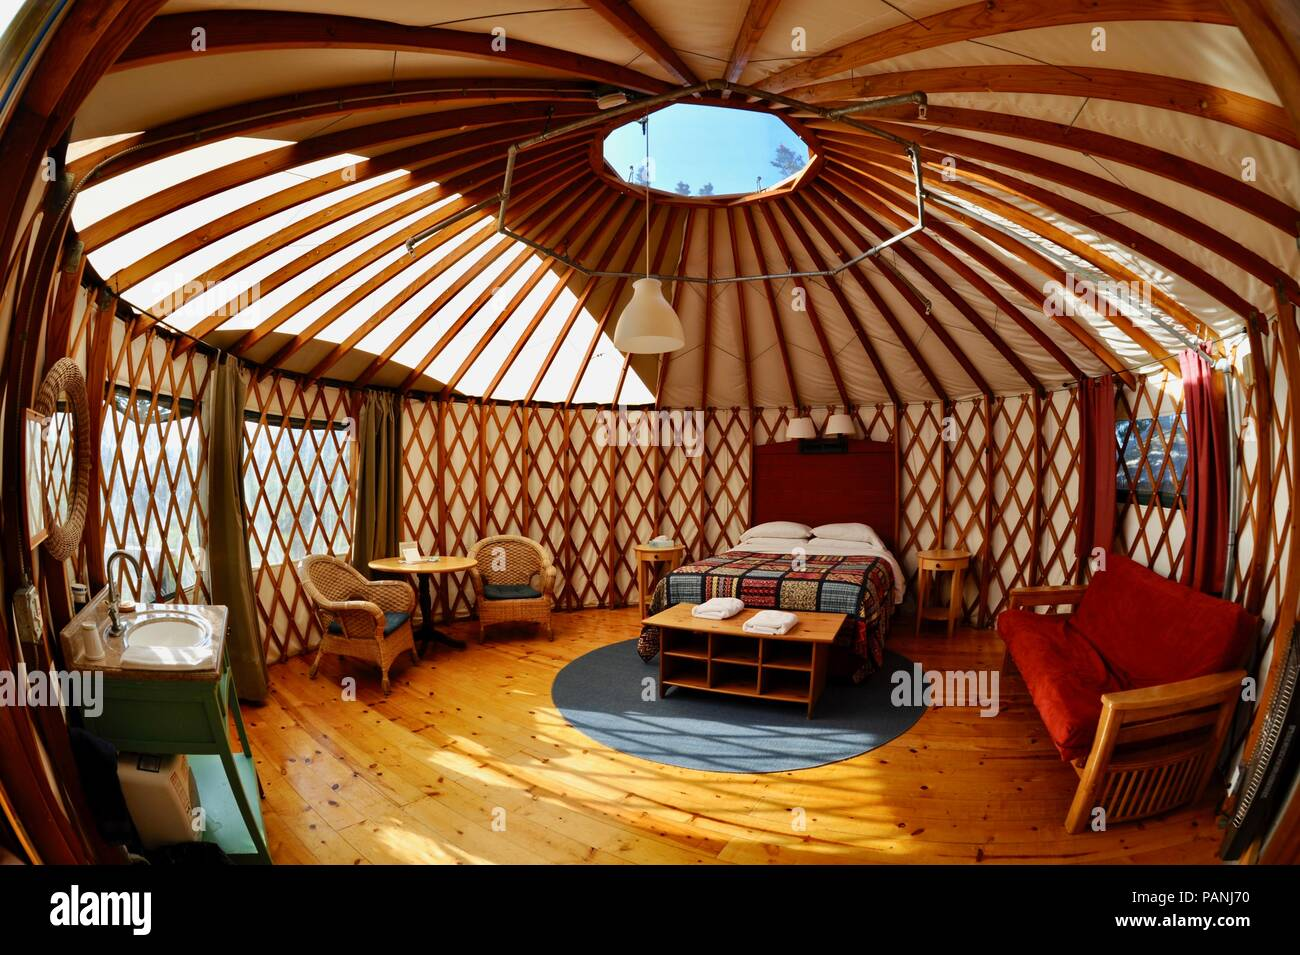 Fabric And Wood Framed Yurt Structures For Luxurious Upscale Glamping Glamorous Camping At Treebones Resort Big Sur California Usa Stock Photo Alamy